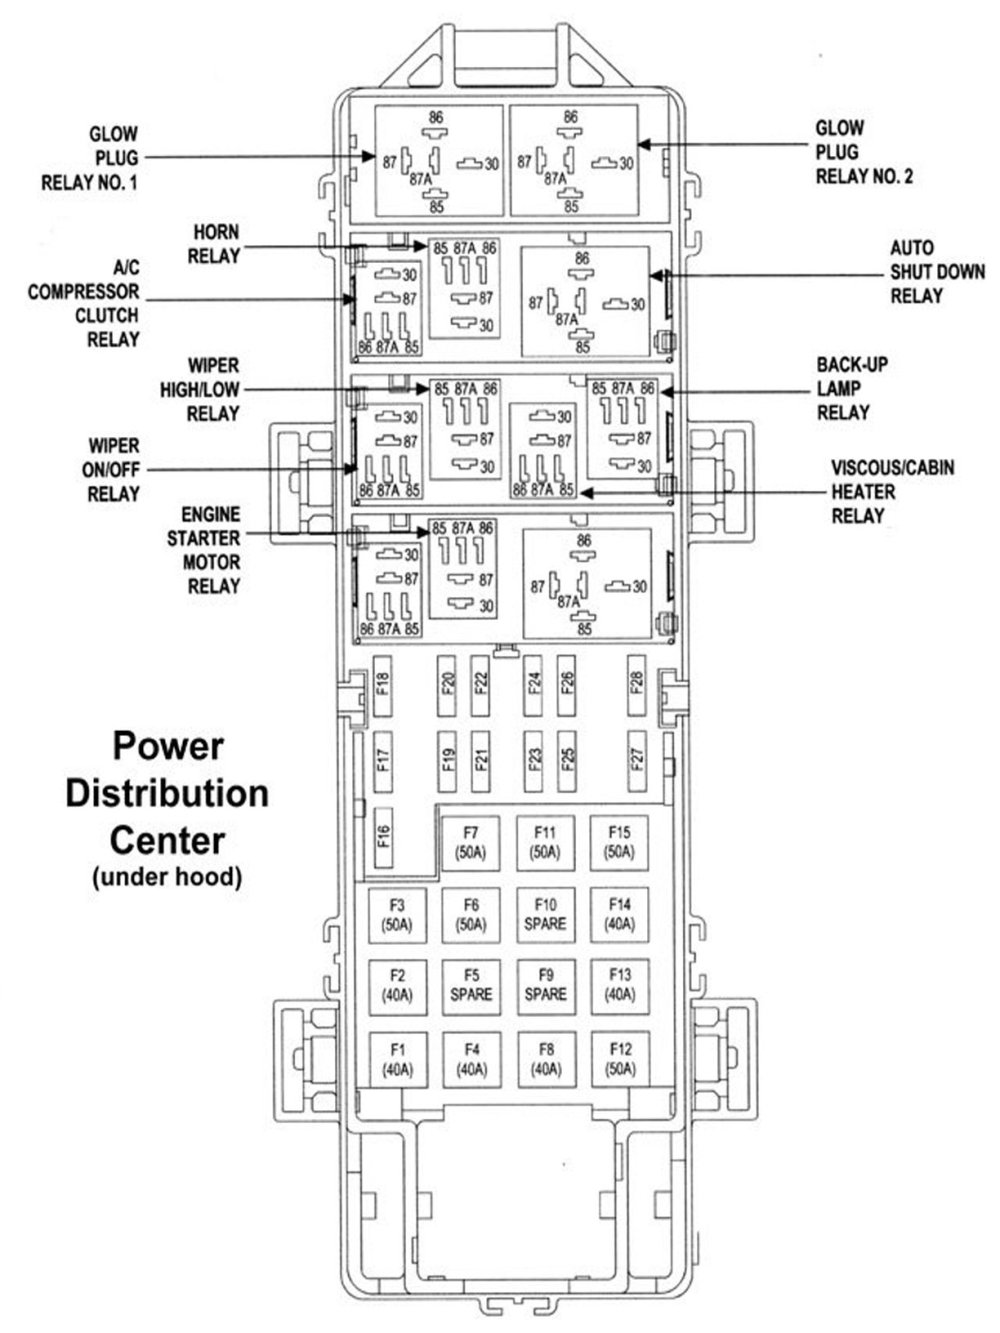 medium resolution of power distribution center diagram